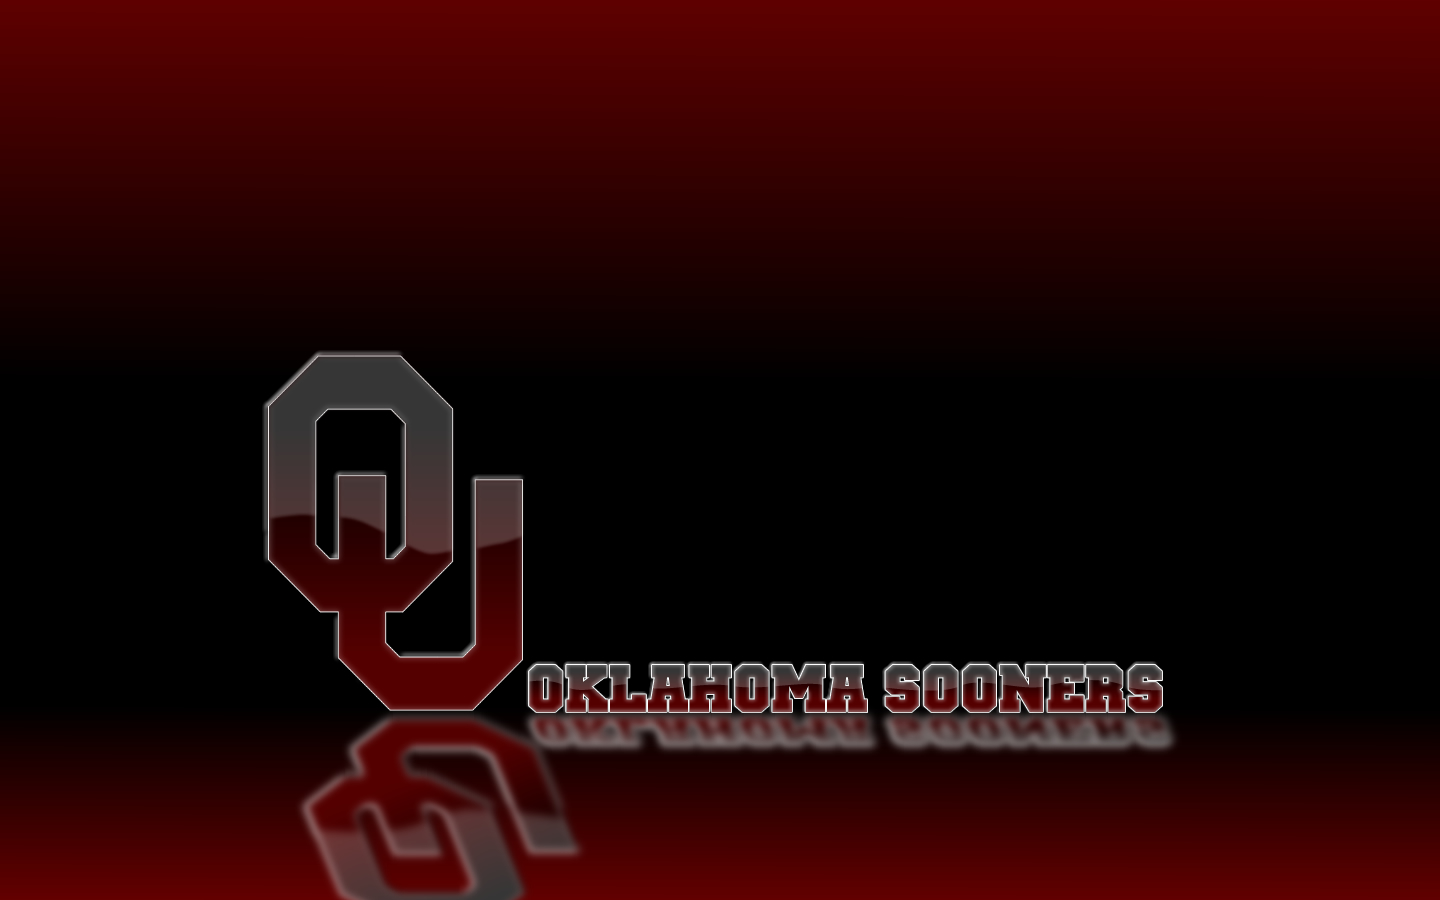 Oklahoma Sooners Wallpaper 1440x900